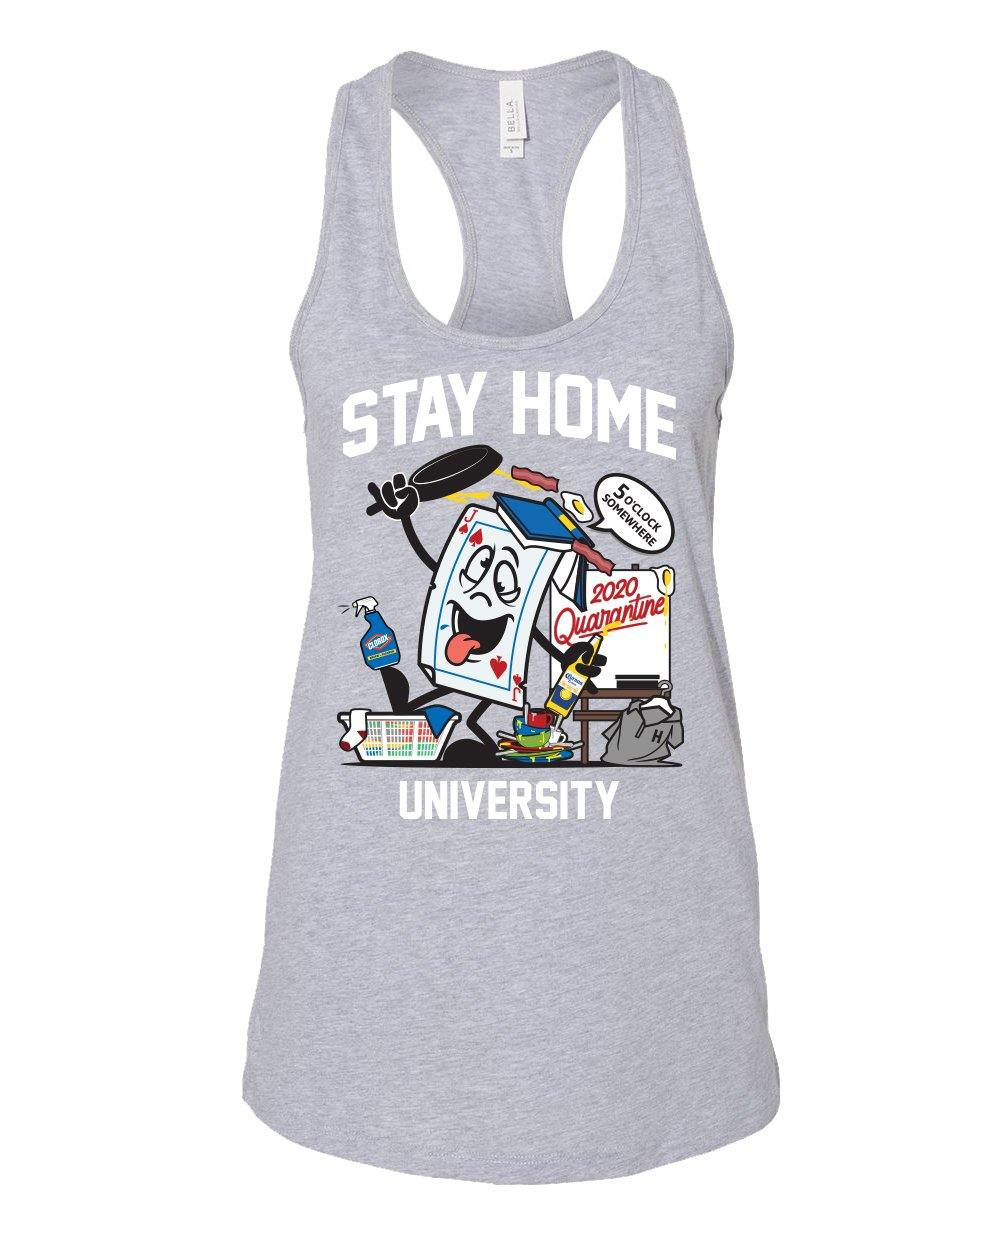 STAY HOME UNIVERSITY - RACERBACK - Shops by Green Gorilla